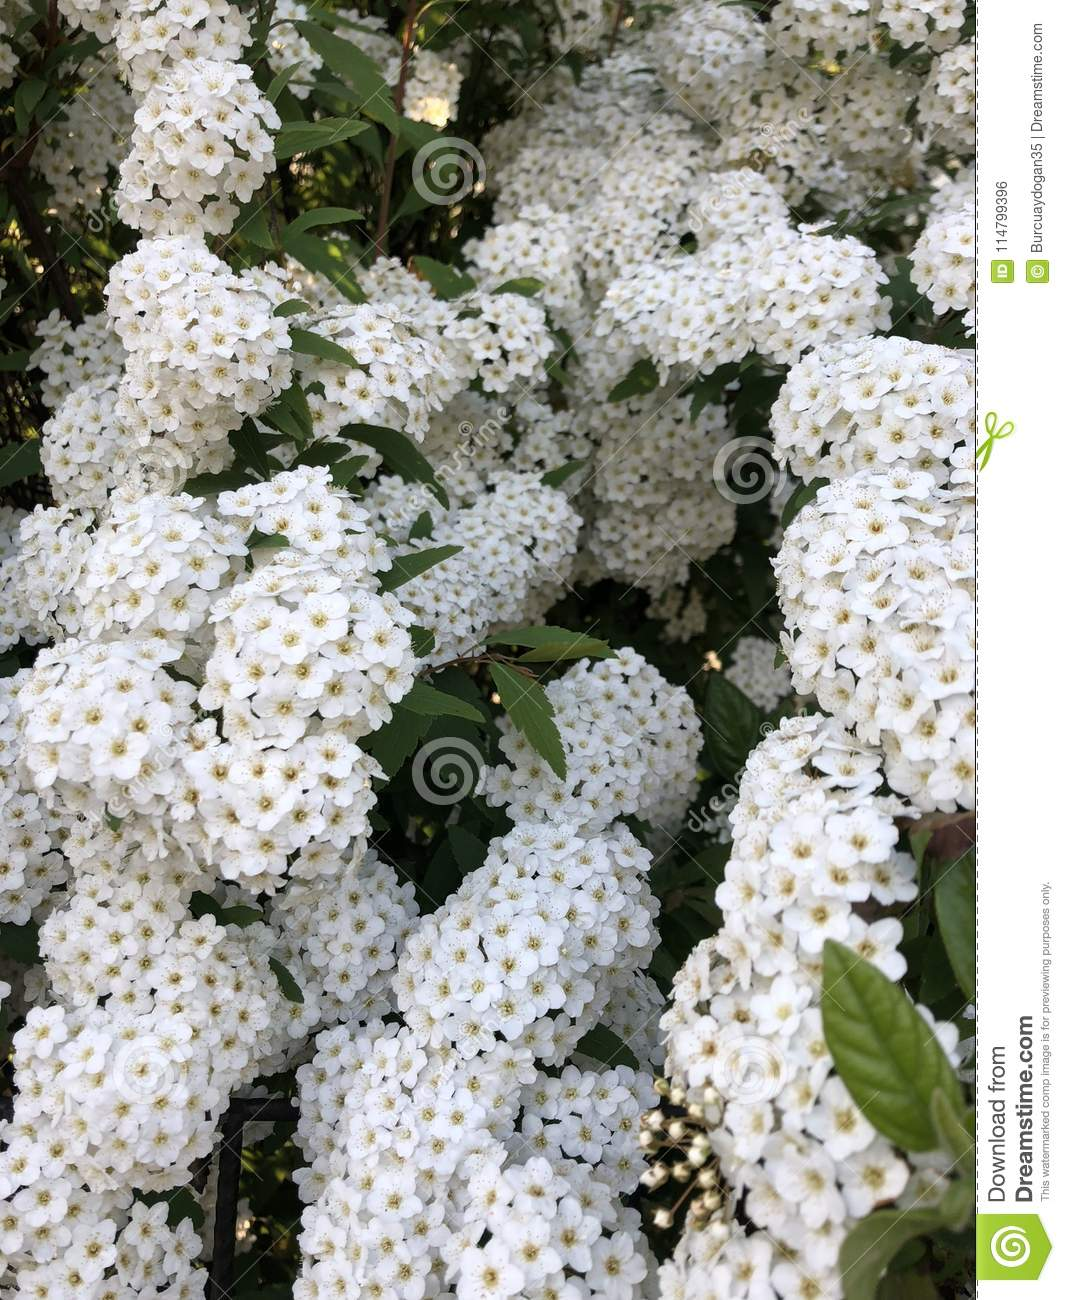 White Tiny Cute Flowers With Green Leafs Stock Photo Image Of Yard